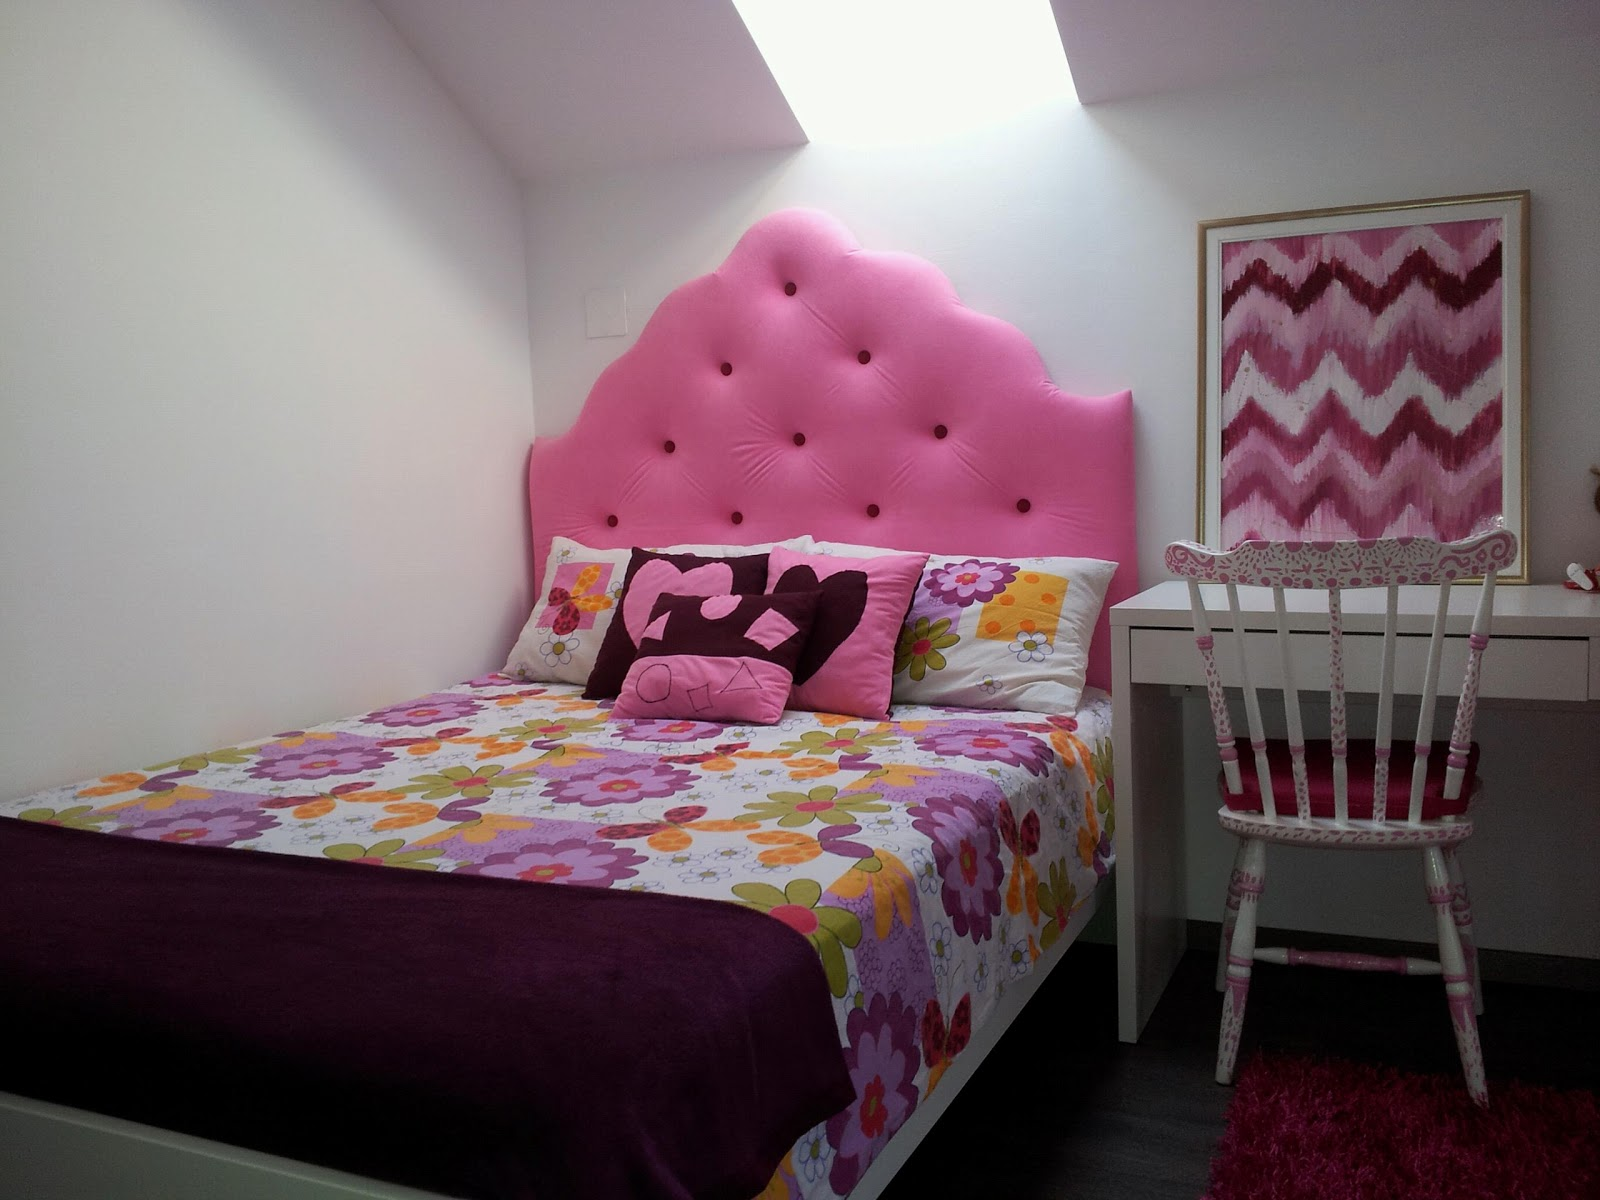 pin featuring bedroom decor velvet pink our and your tufting diamond with elevate headboard blush smooth